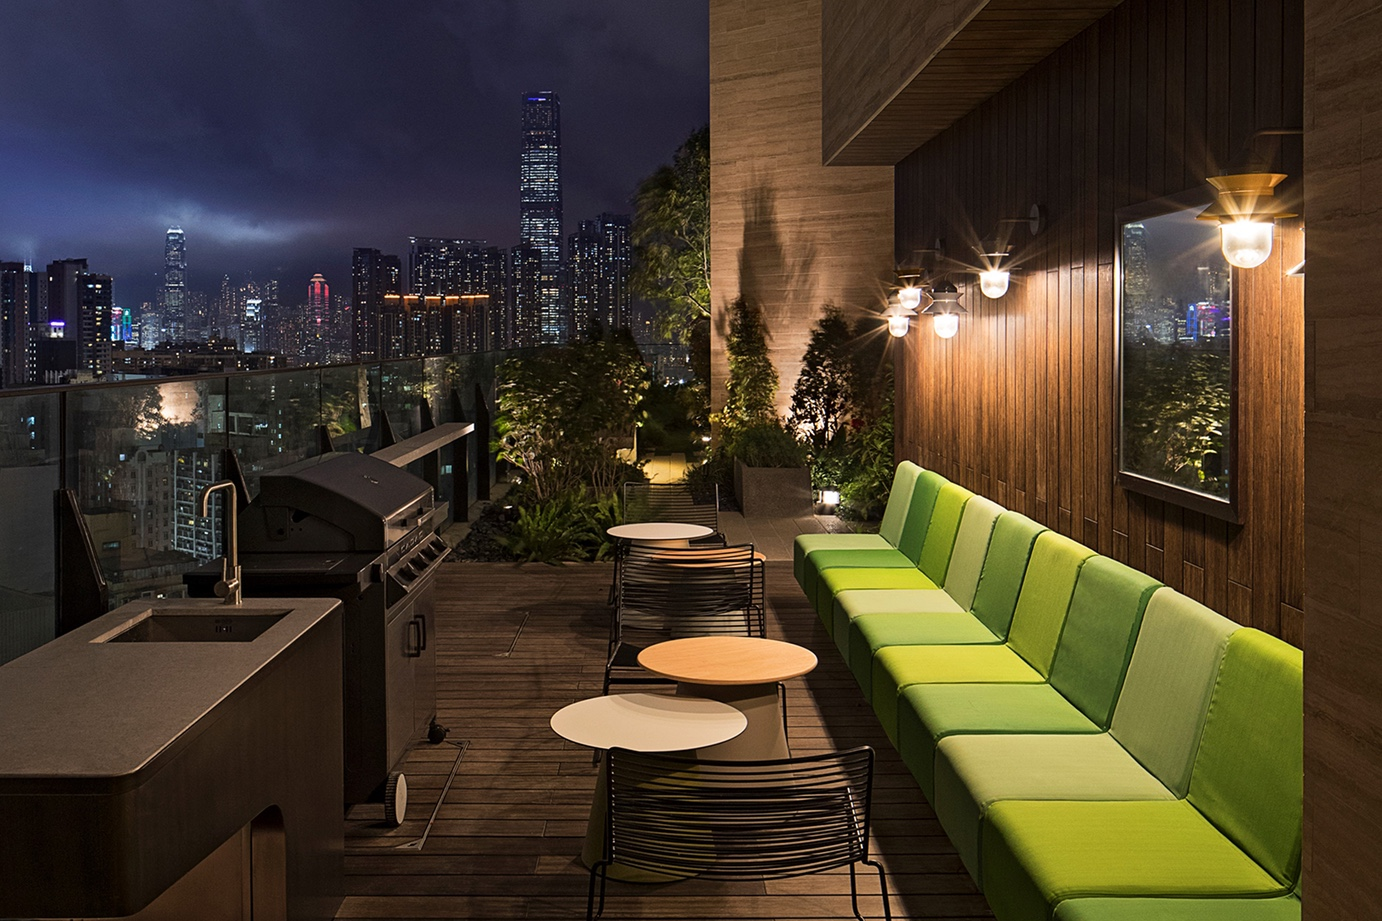 http-%2F%2Fhypebeast.com%2Fimage%2F2017%2F05%2Fskypark-offers-hong-kong-residents-a-more-communal-living-experience-0010.jpg